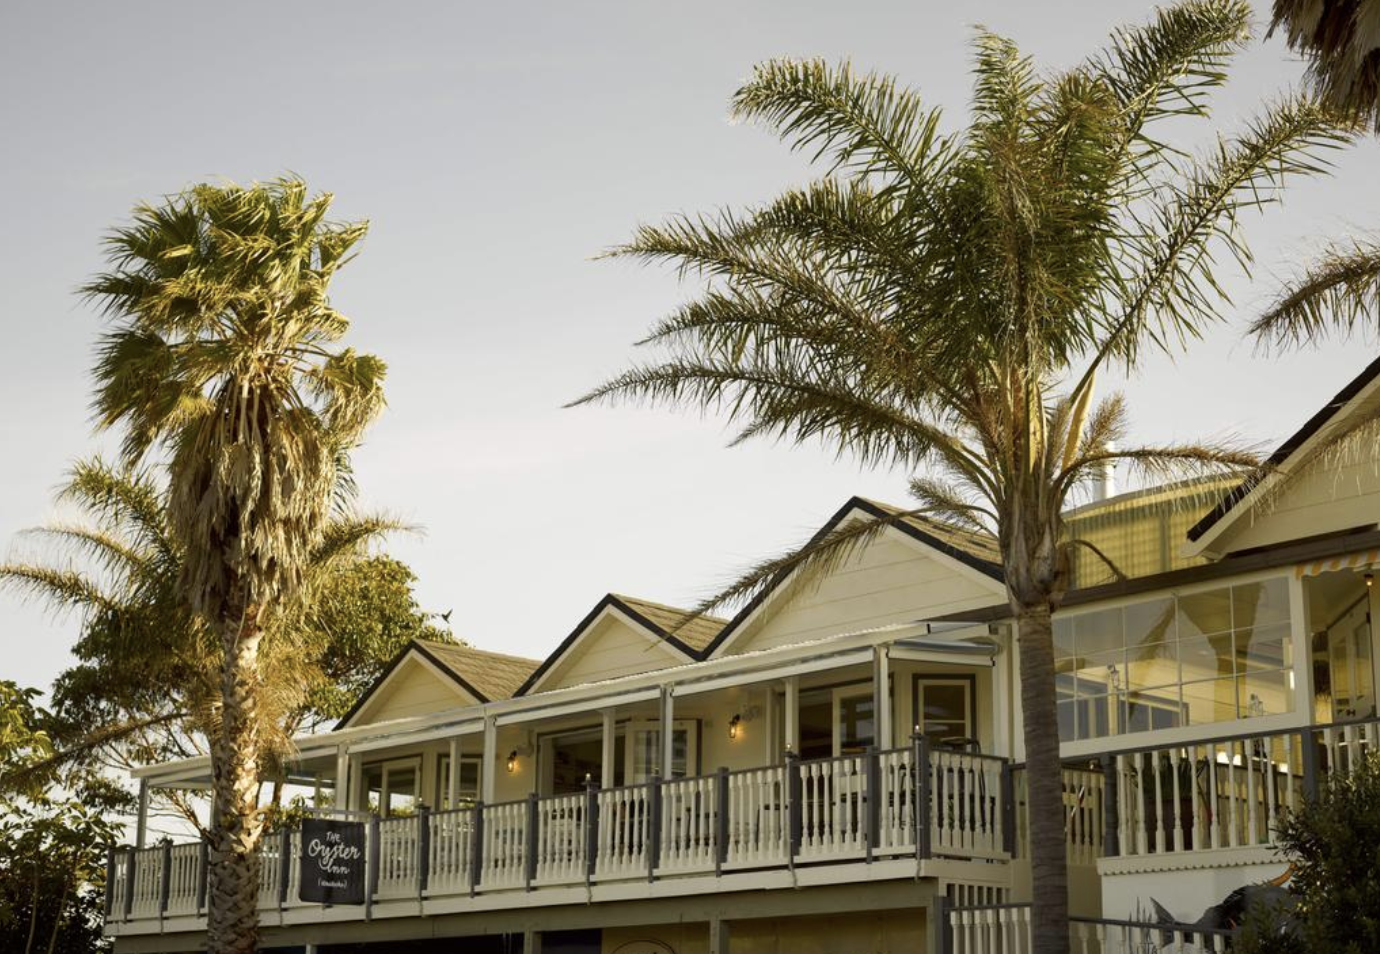 New Zealand honeymoon - Waiheke Island accommodation